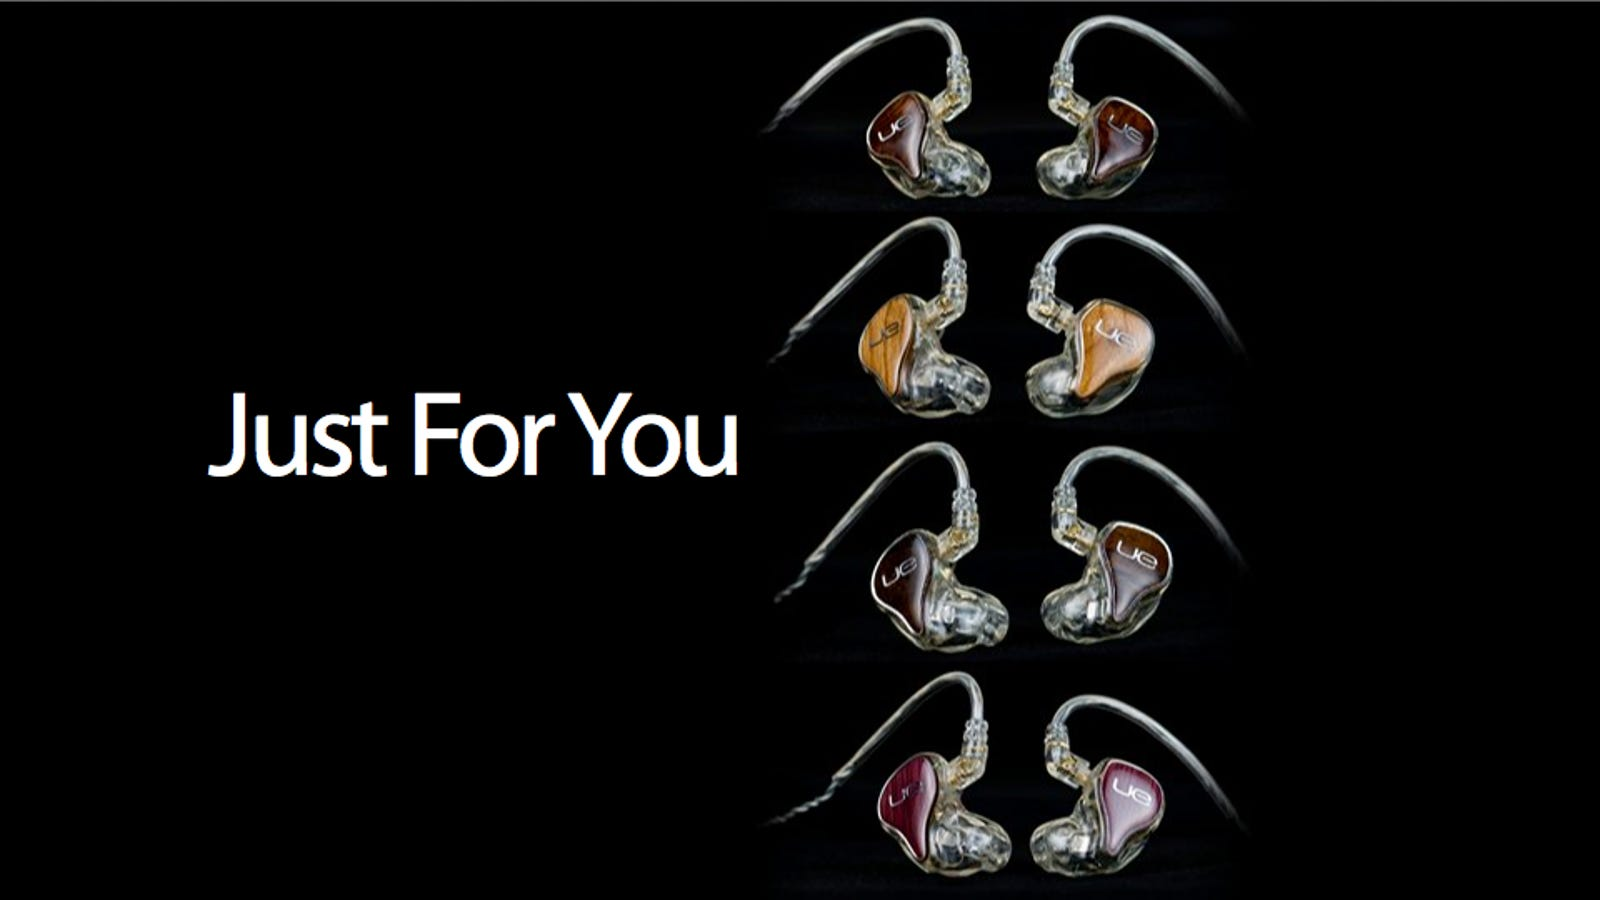 apple earbuds md827ll/a - $2000 Customizable Earbuds Come With a Personal Sound Coach